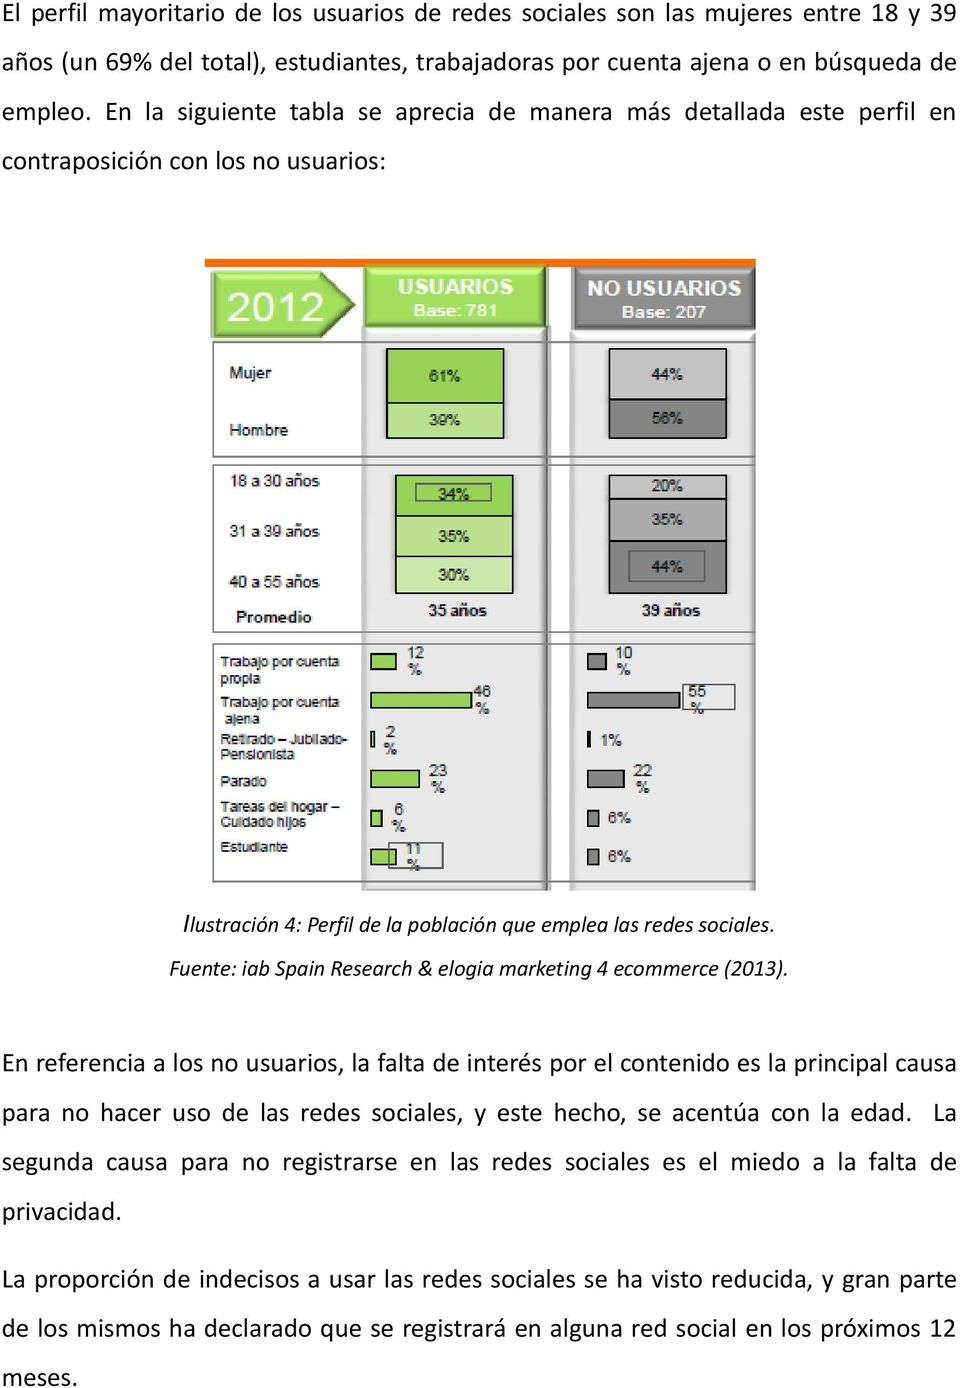 Fuente: iab Spain Research & elogia marketing 4 ecommerce (2013).